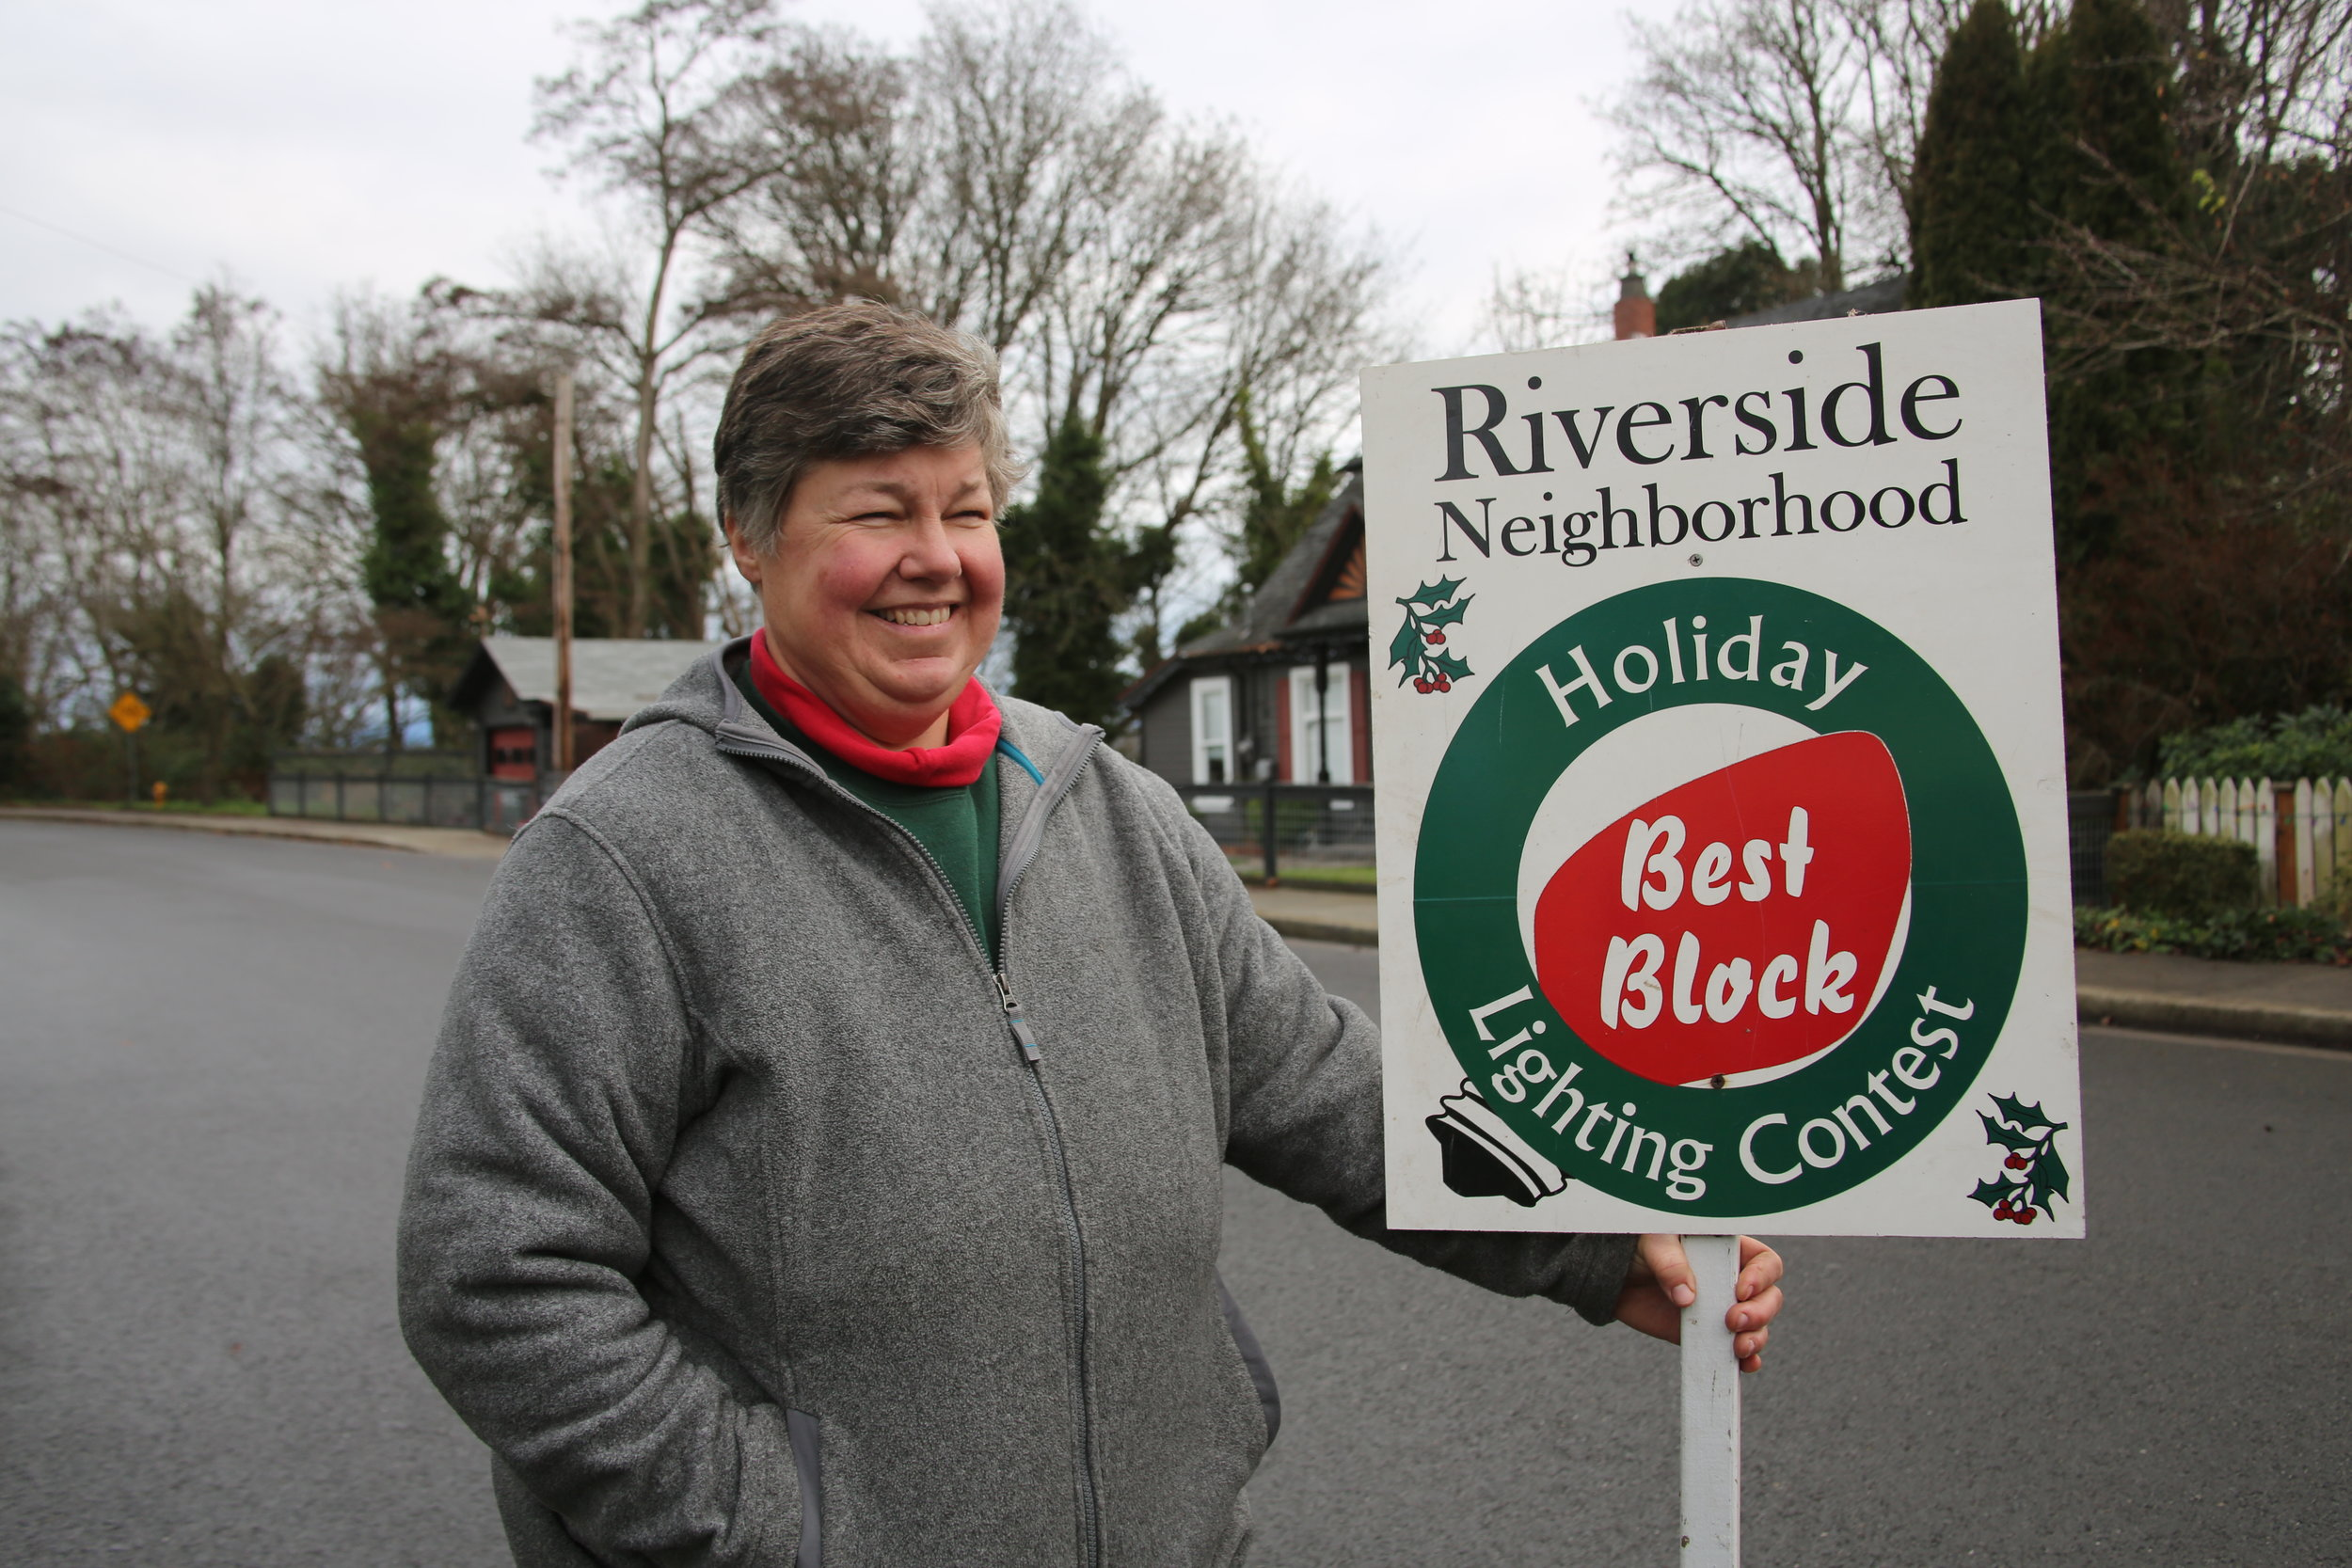 Katrina holding the returned Riverside neighborhood Holiday Lighting Contest sign.